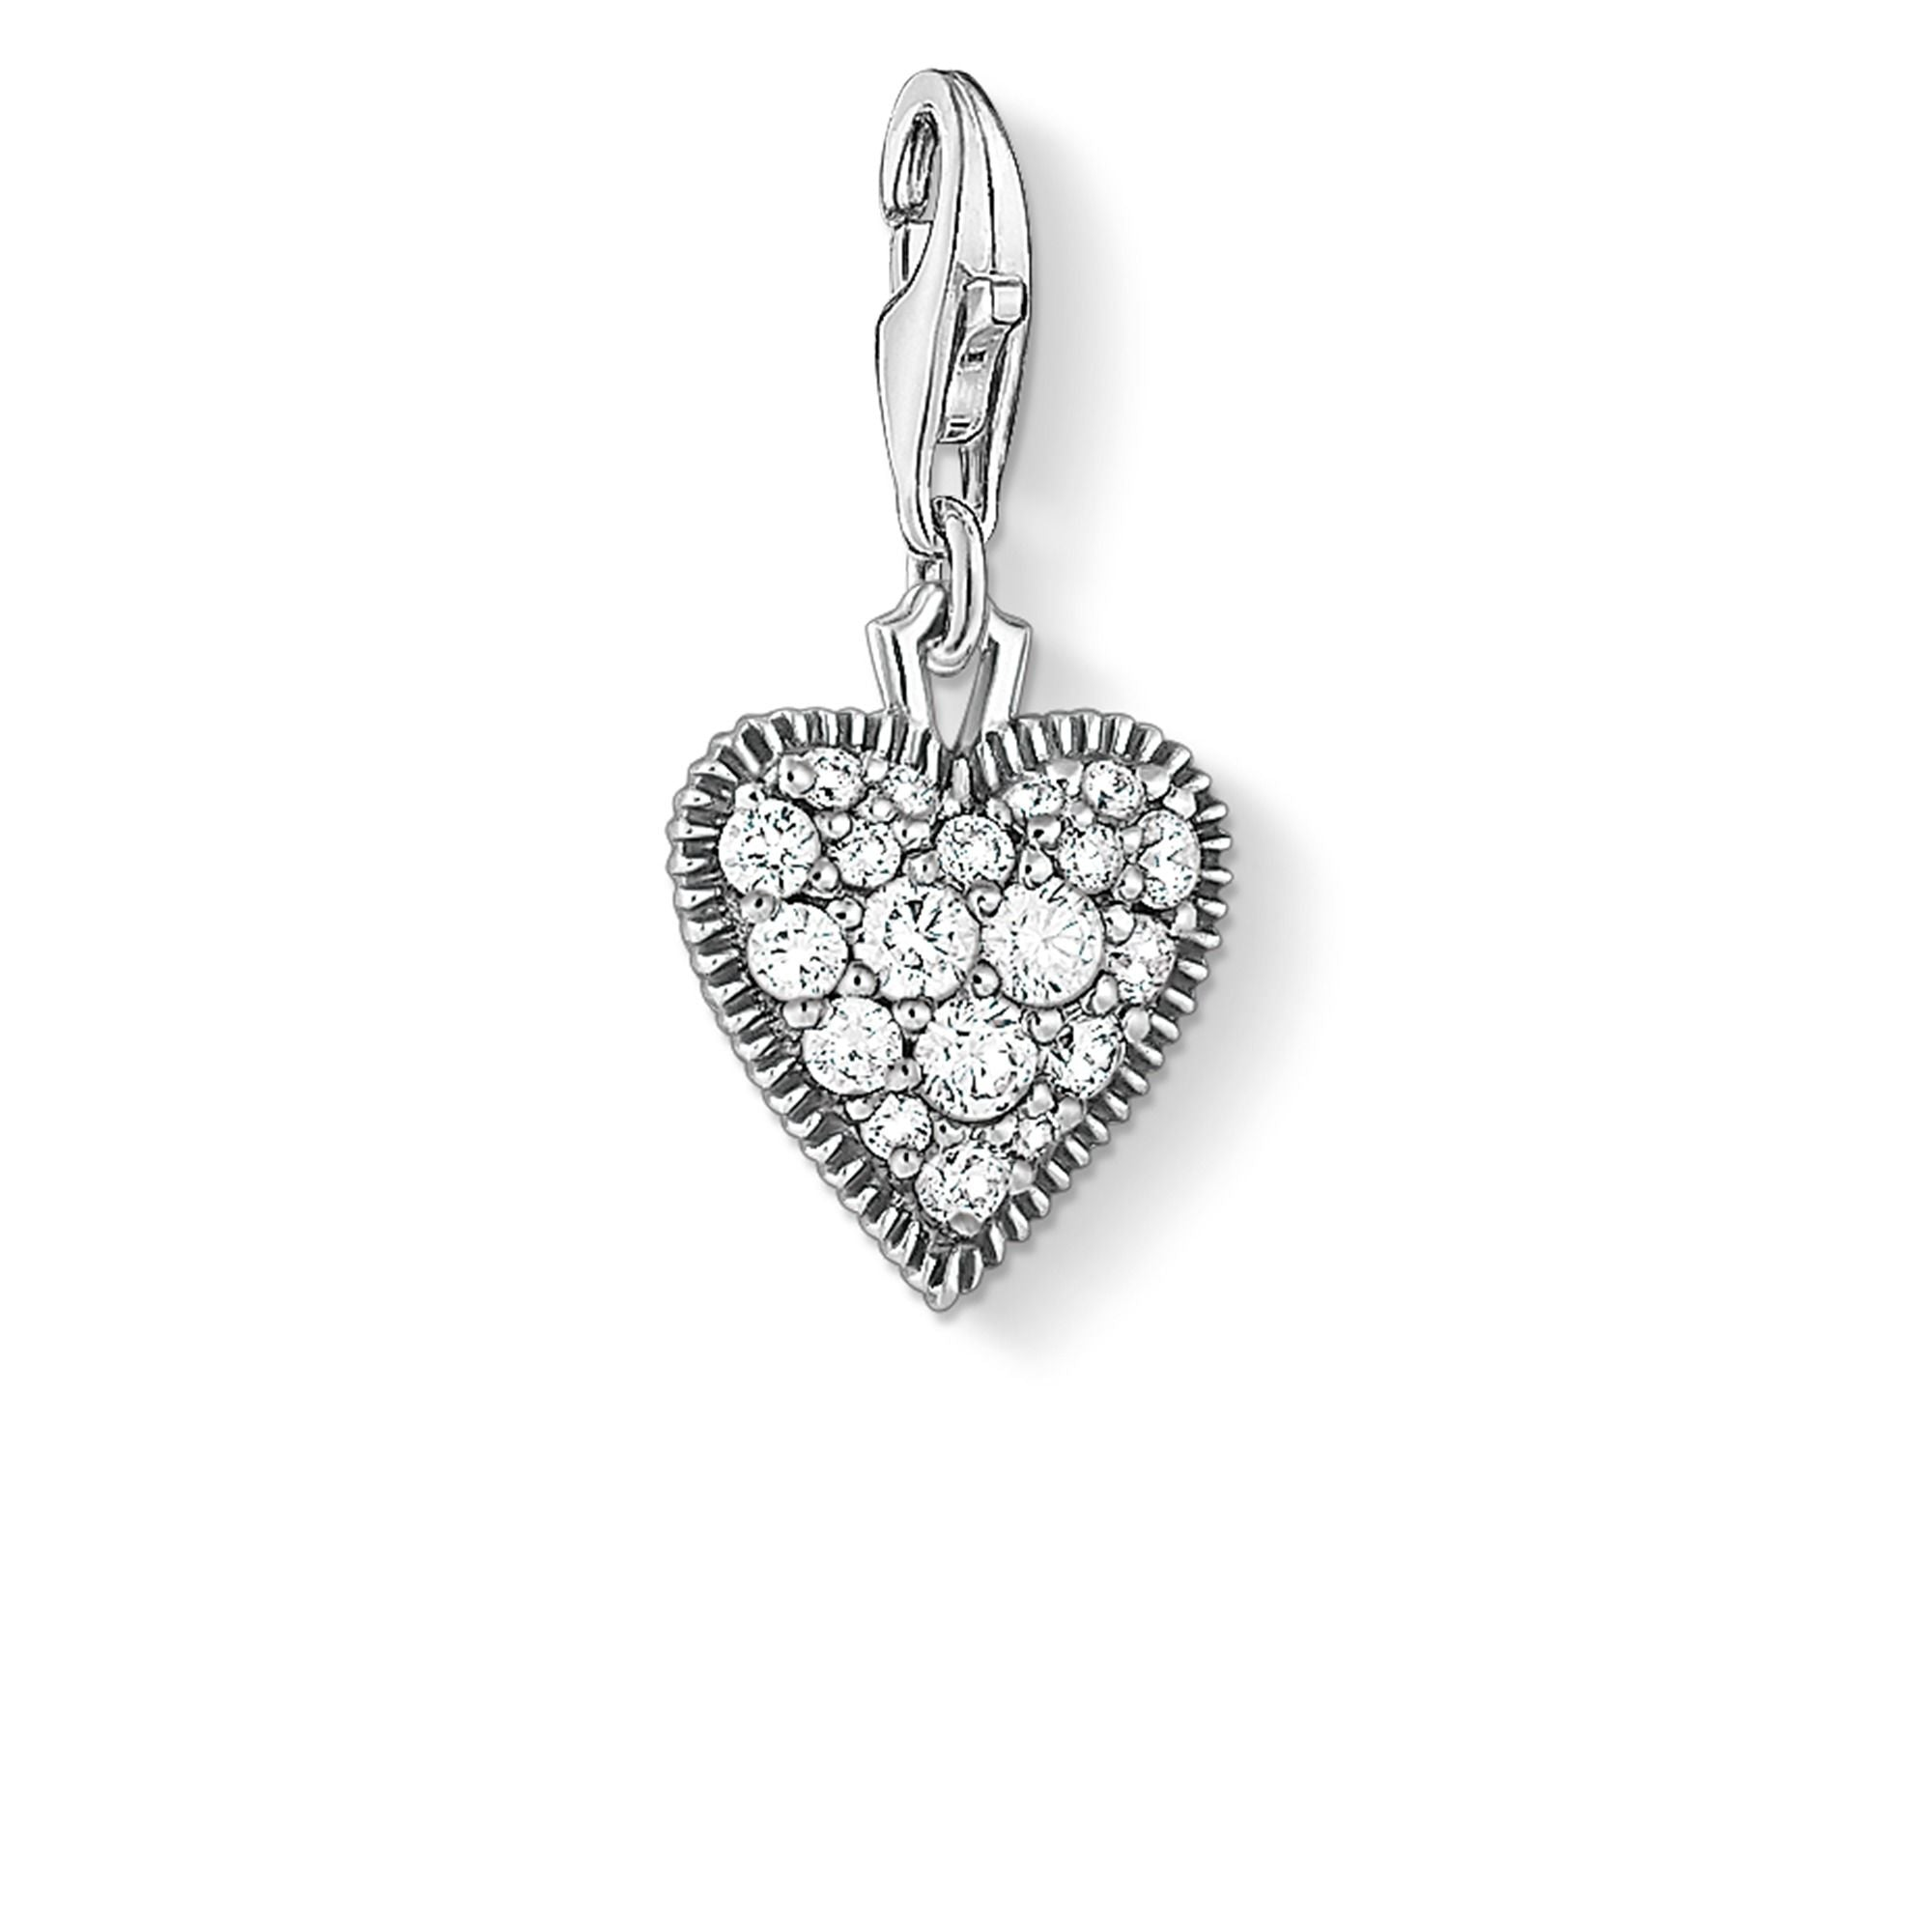 Thomas Sabo Charm Club Vintage Heart 1747-643-14